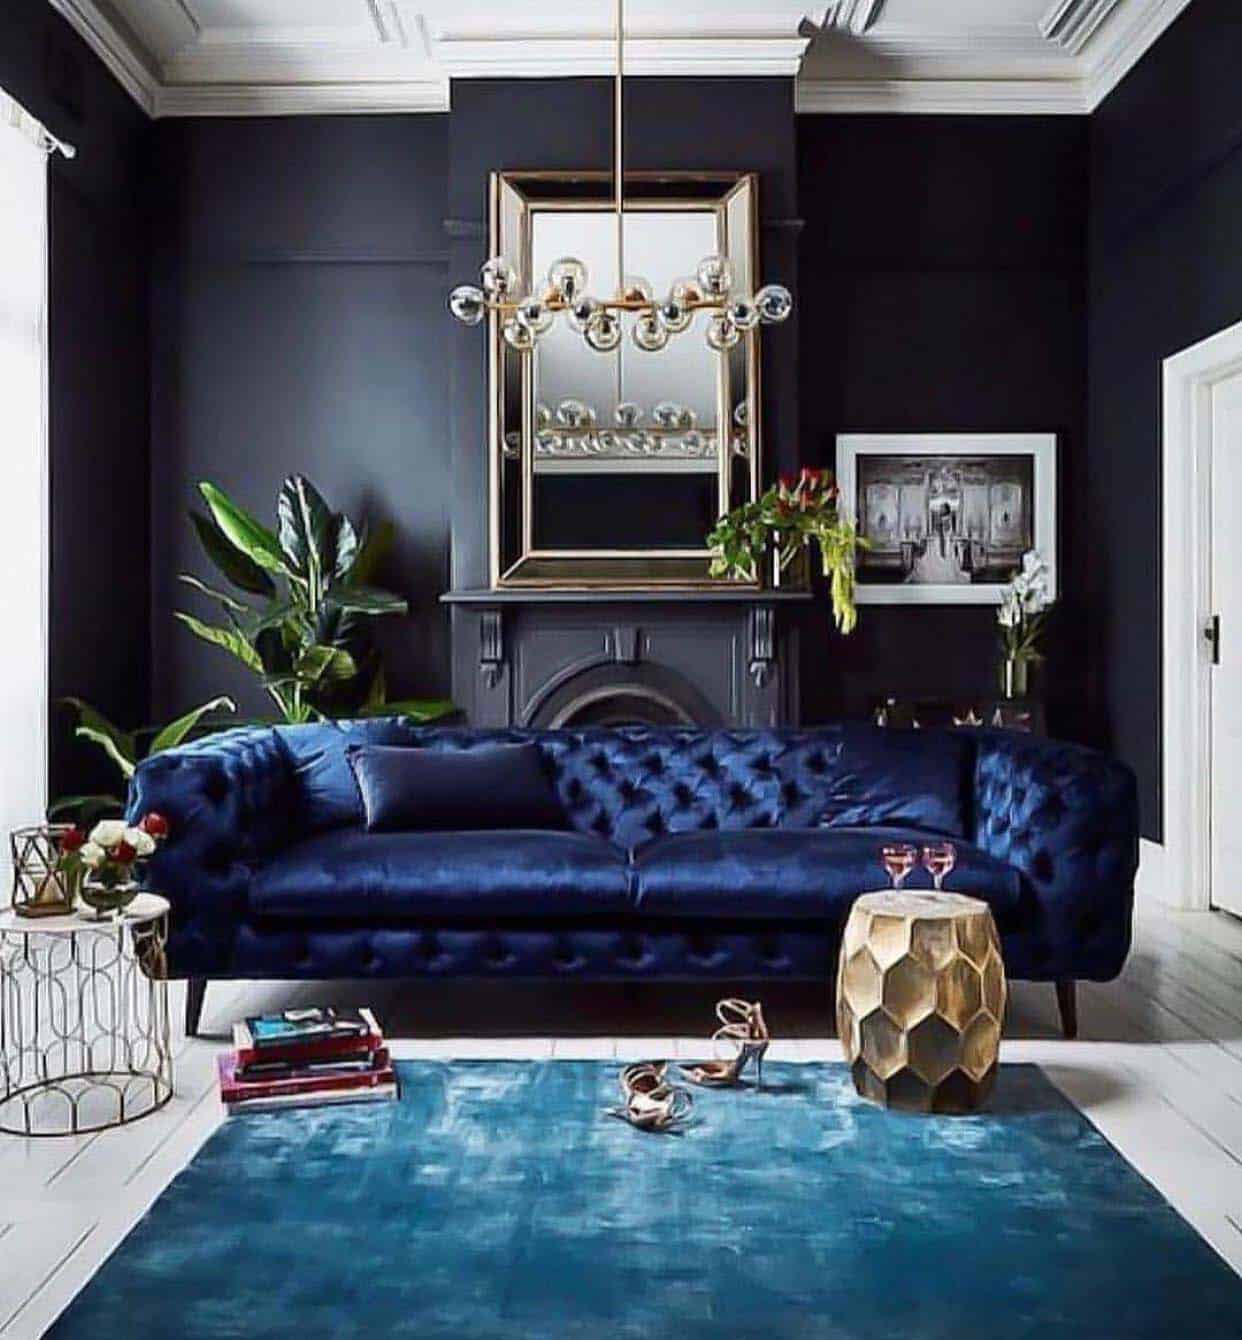 28 gorgeous living rooms with black walls that create cozy drama rh onekindesign com black wall living room ideas black brick wall living room